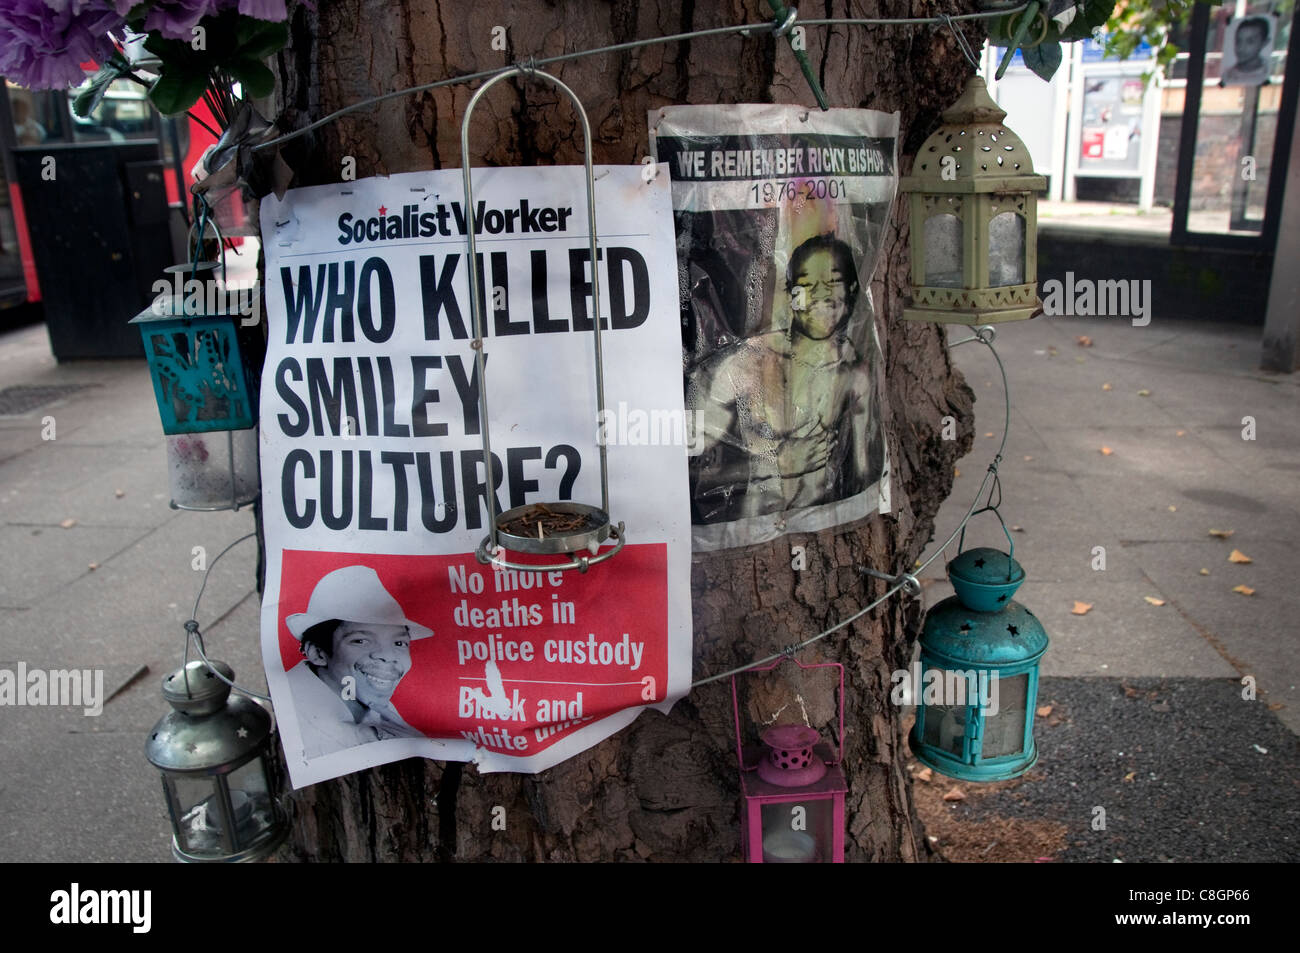 Poster and shrine outside Brixton police Station about Smiley Culture a singer who died in police custody - Stock Image